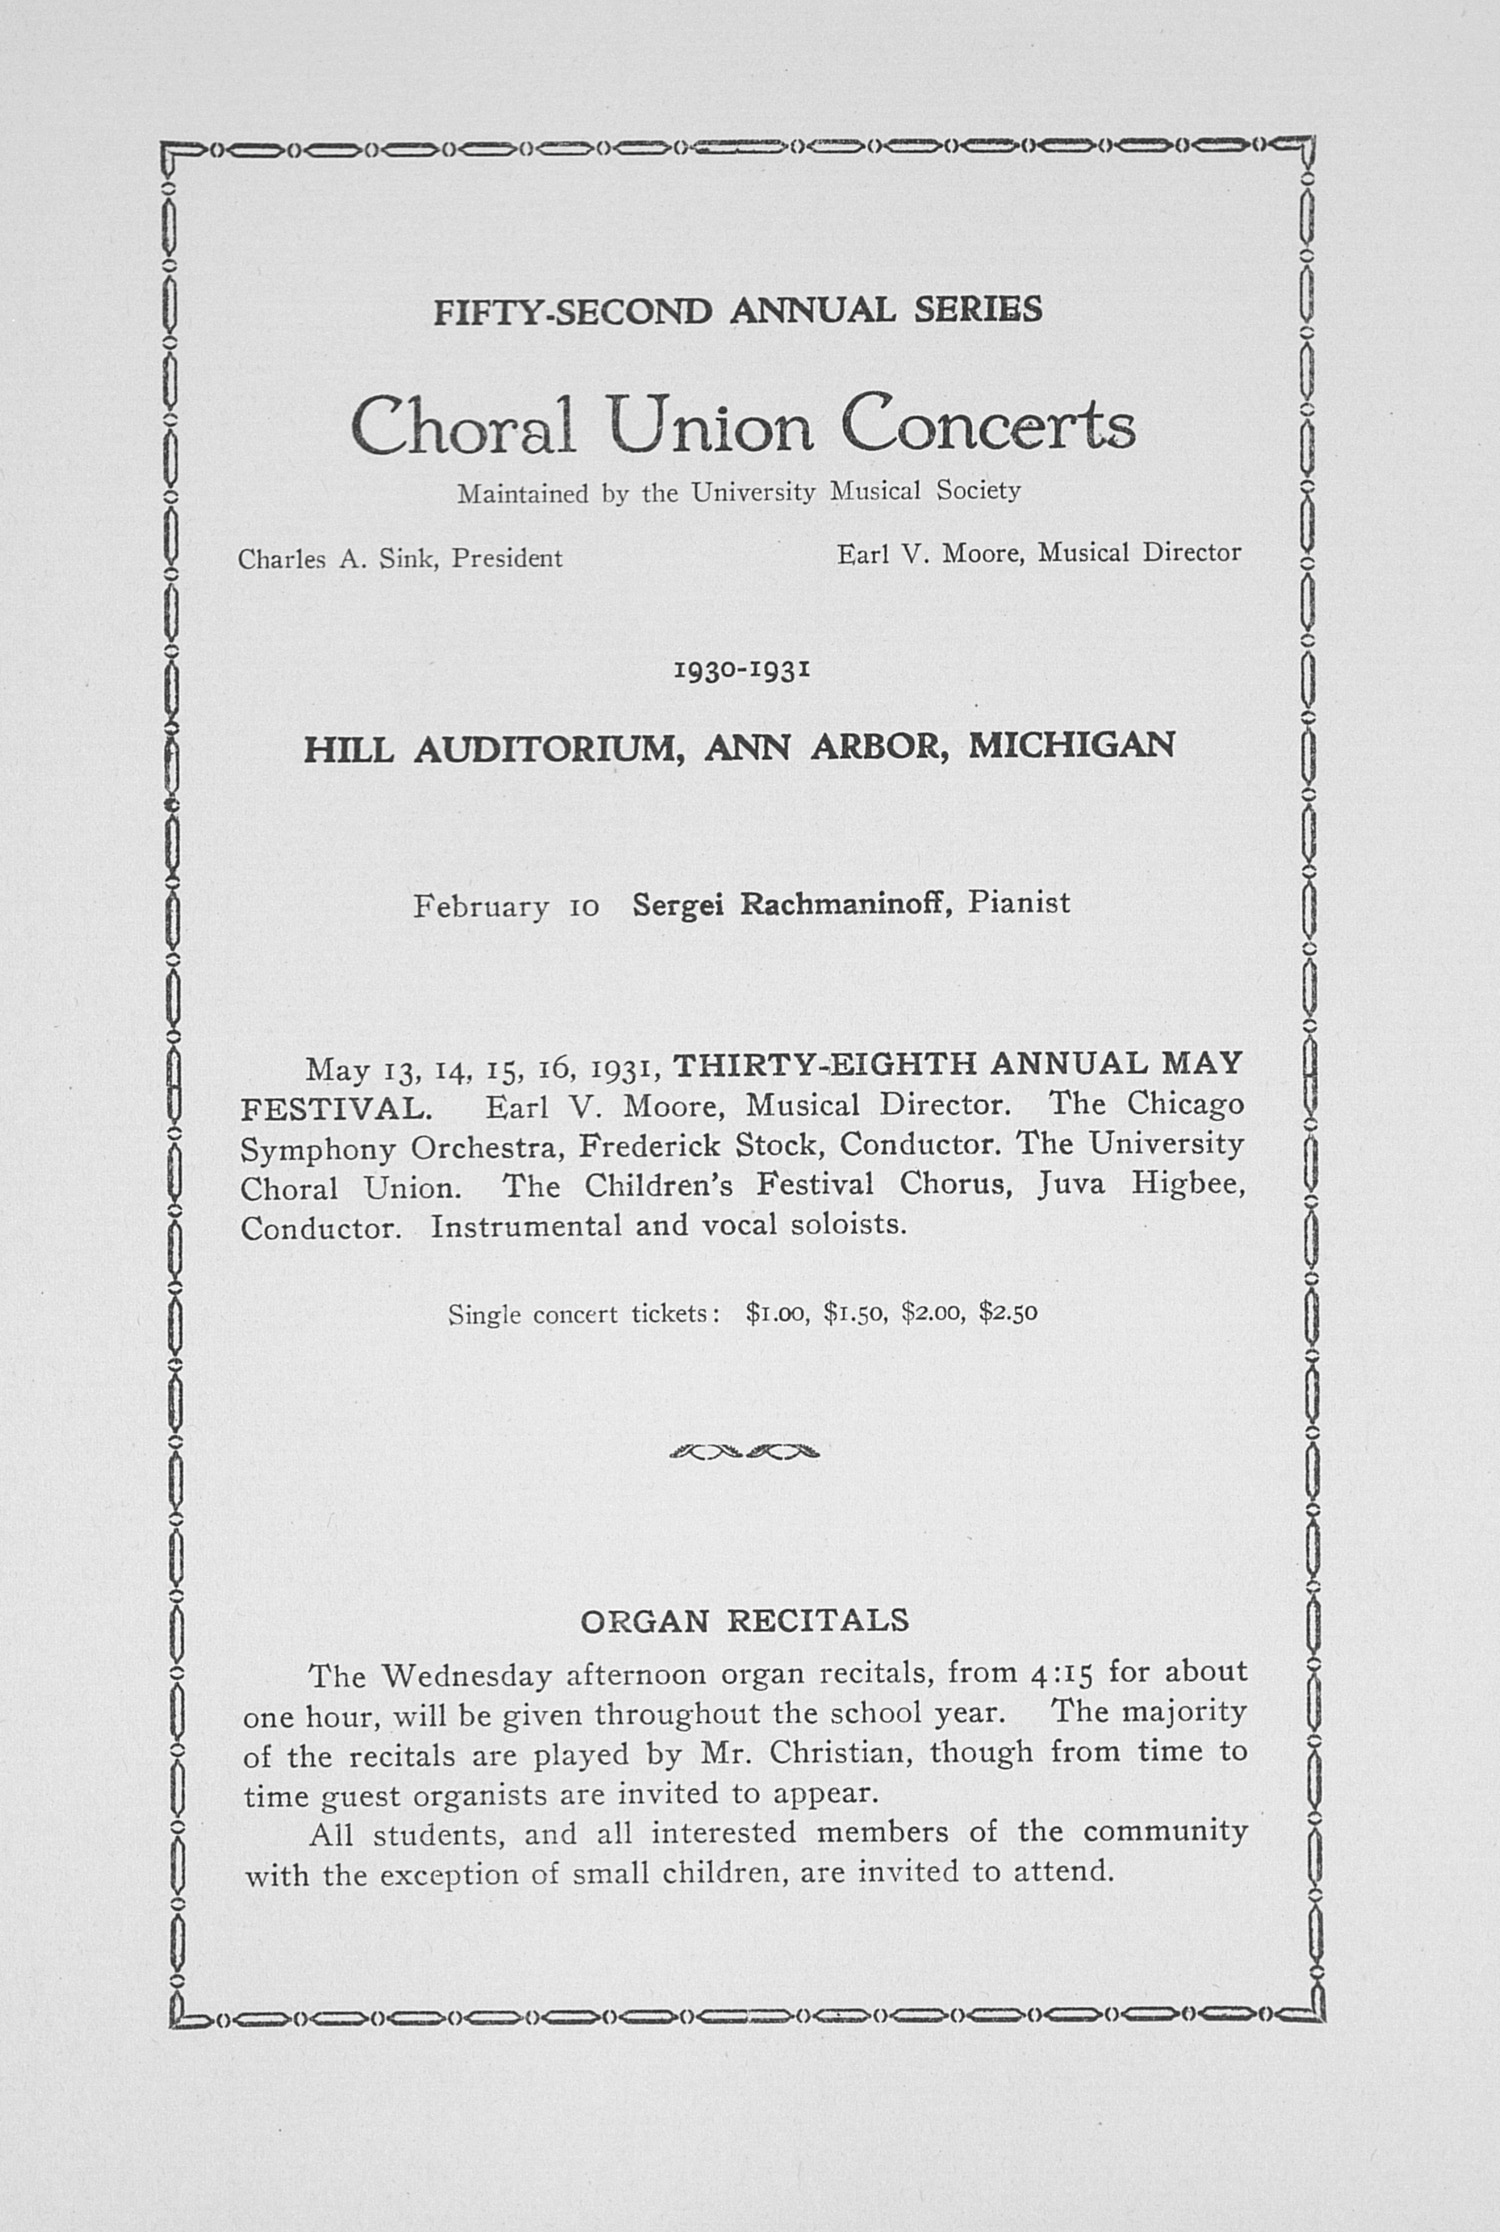 UMS Concert Program, February 2, 1931: Fifty-second Annual Choral Union Concert Series -- Paul Robeson image